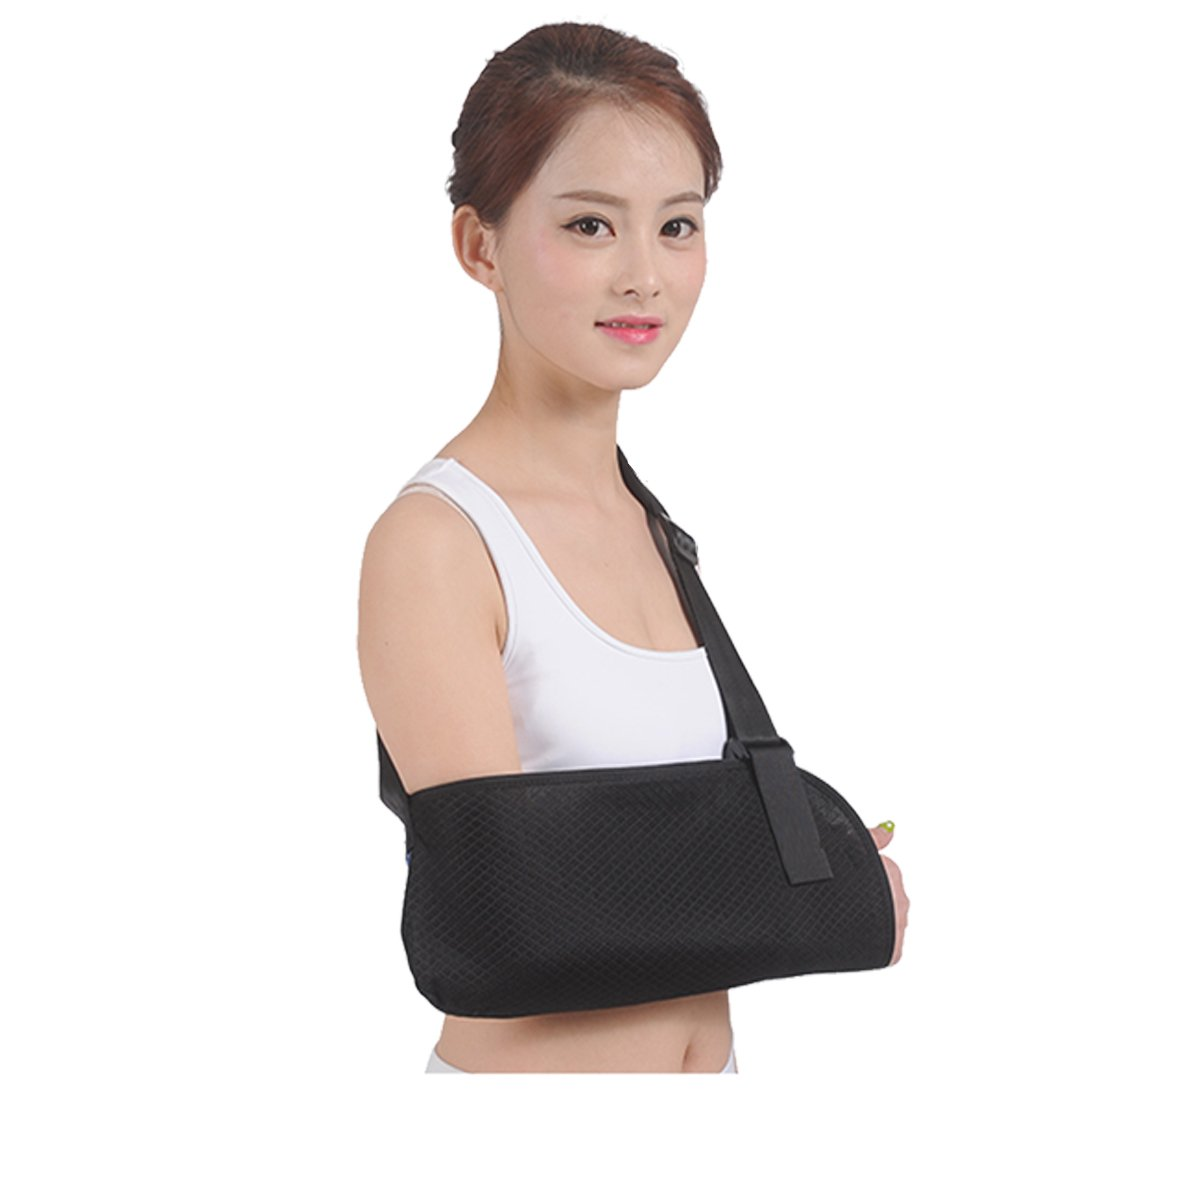 Arm Sling for Shoulder Injury Broken Arm Elbow Medical Grade Breathable Mesh Arm Support for Men Women Injury Recovery Arm Immobilizer Unisex Small Size Black